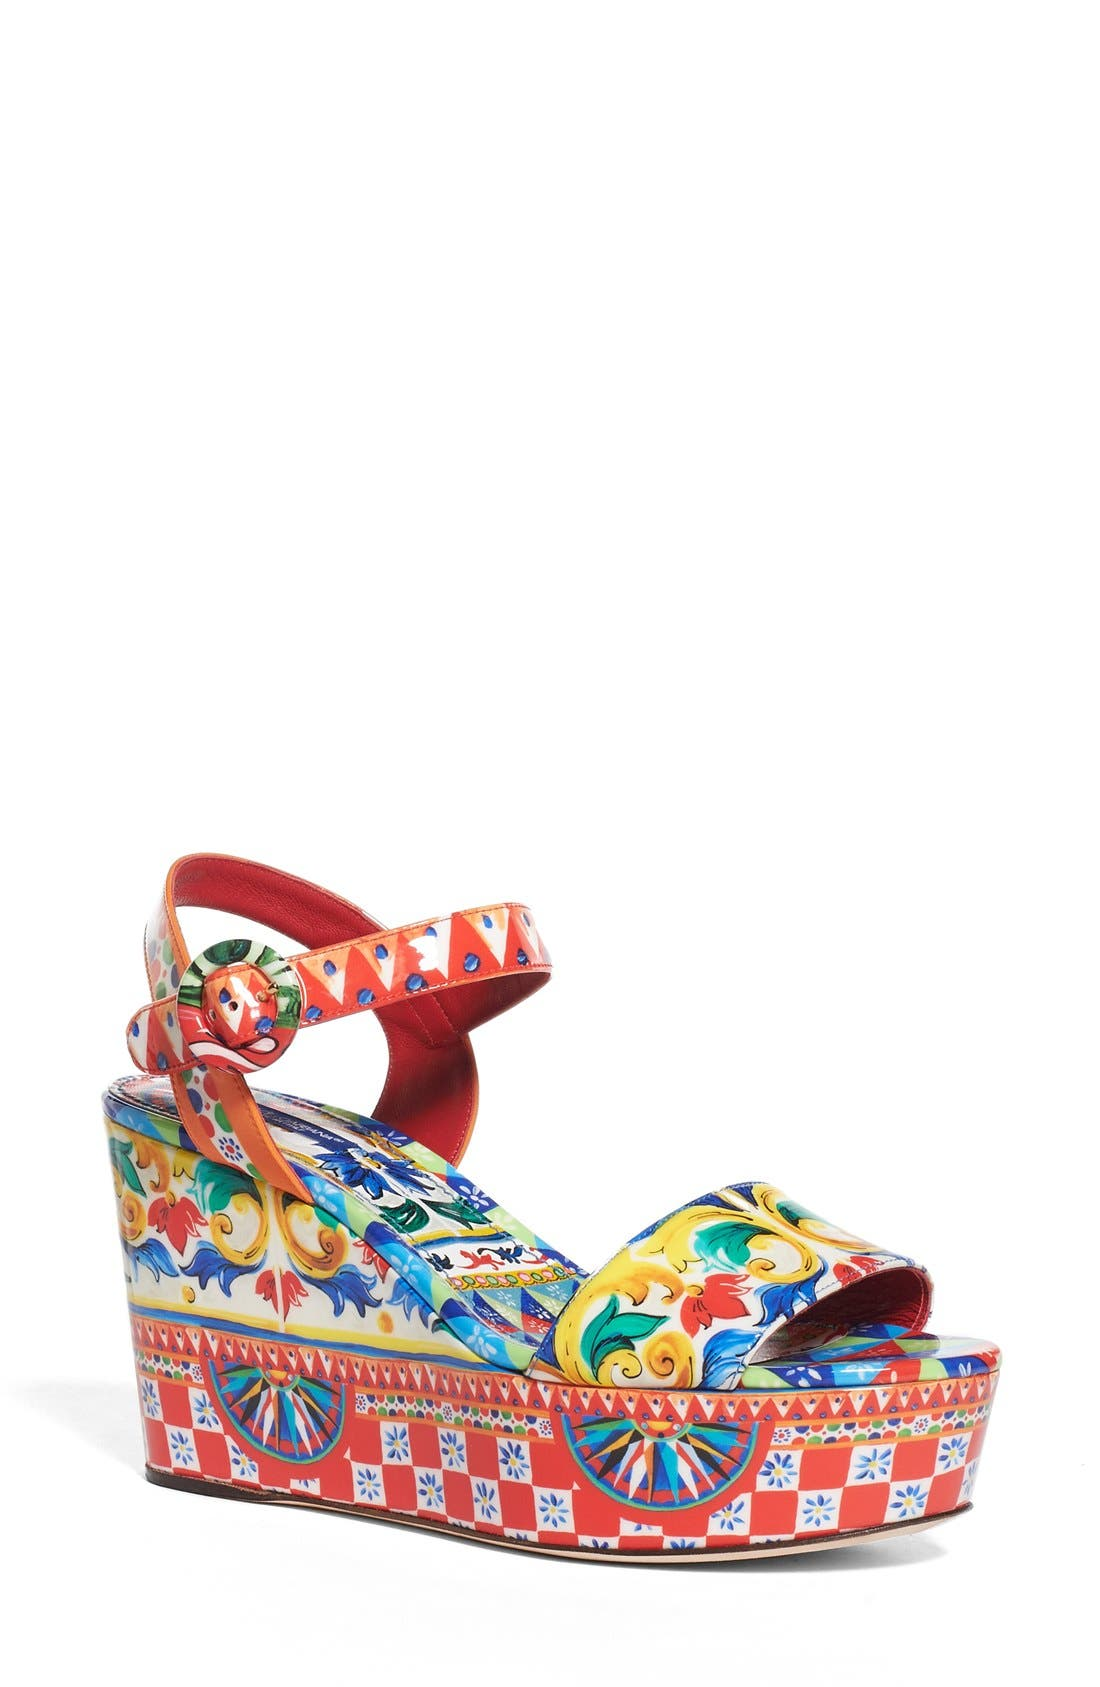 DOLCE&GABBANA Carretto Platform Wedge Sandal